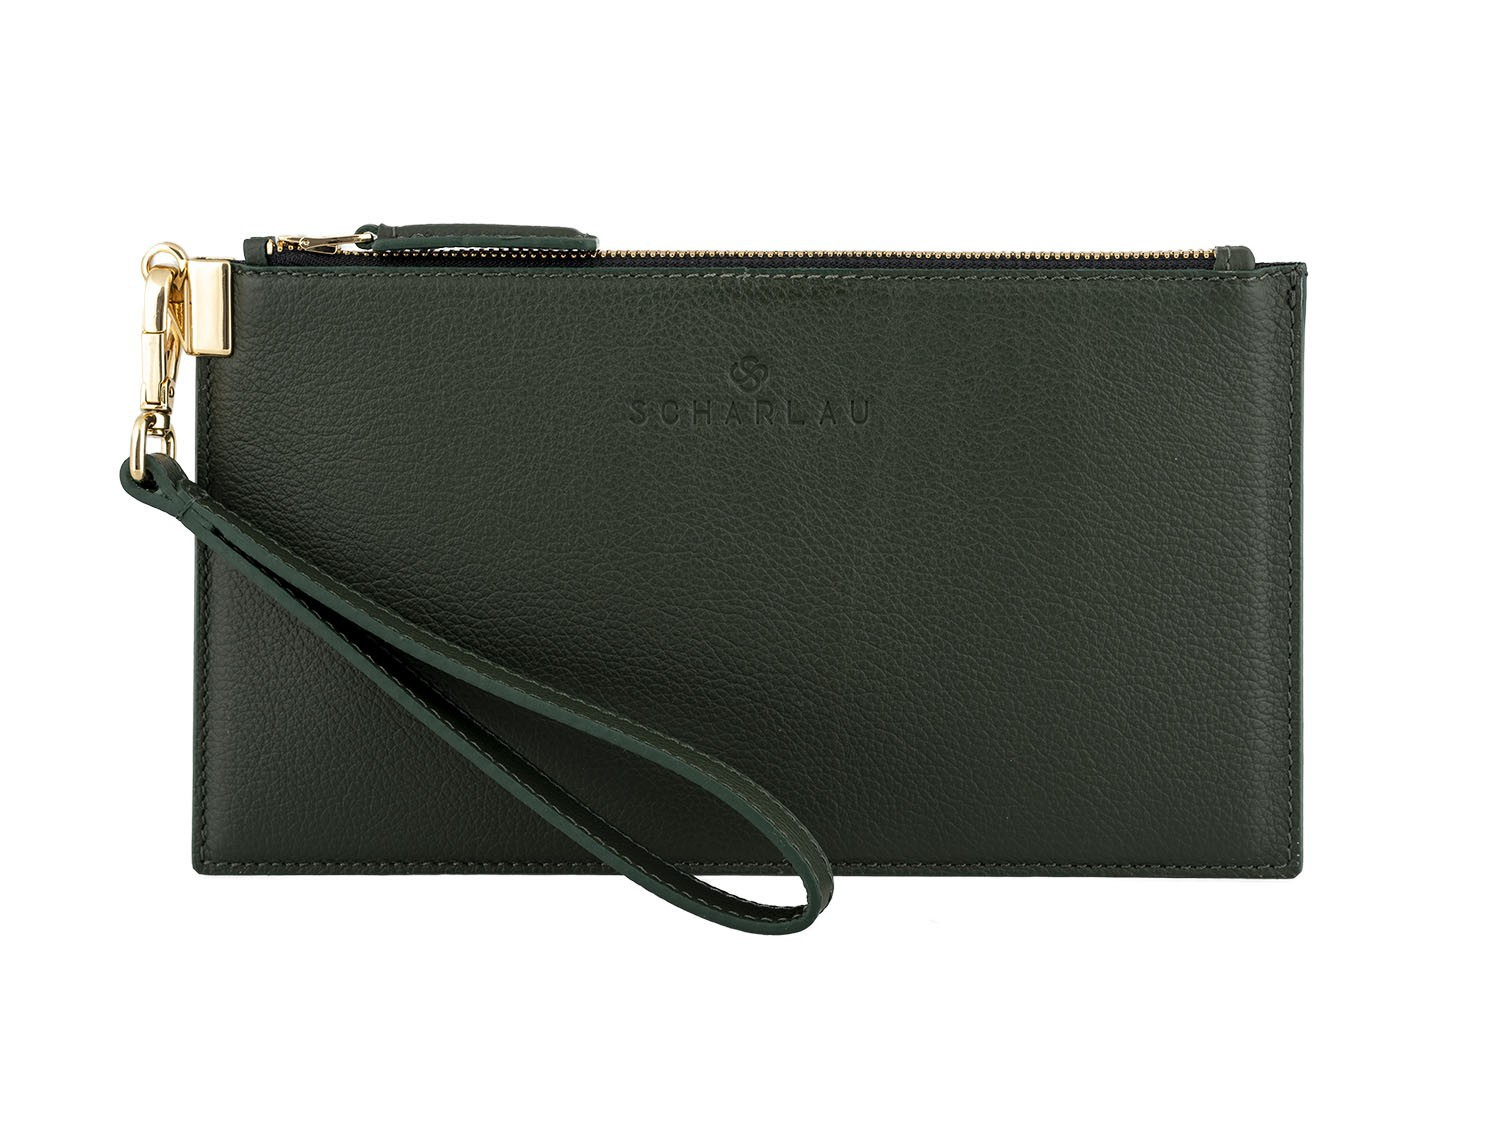 women's leather evening bag in green front